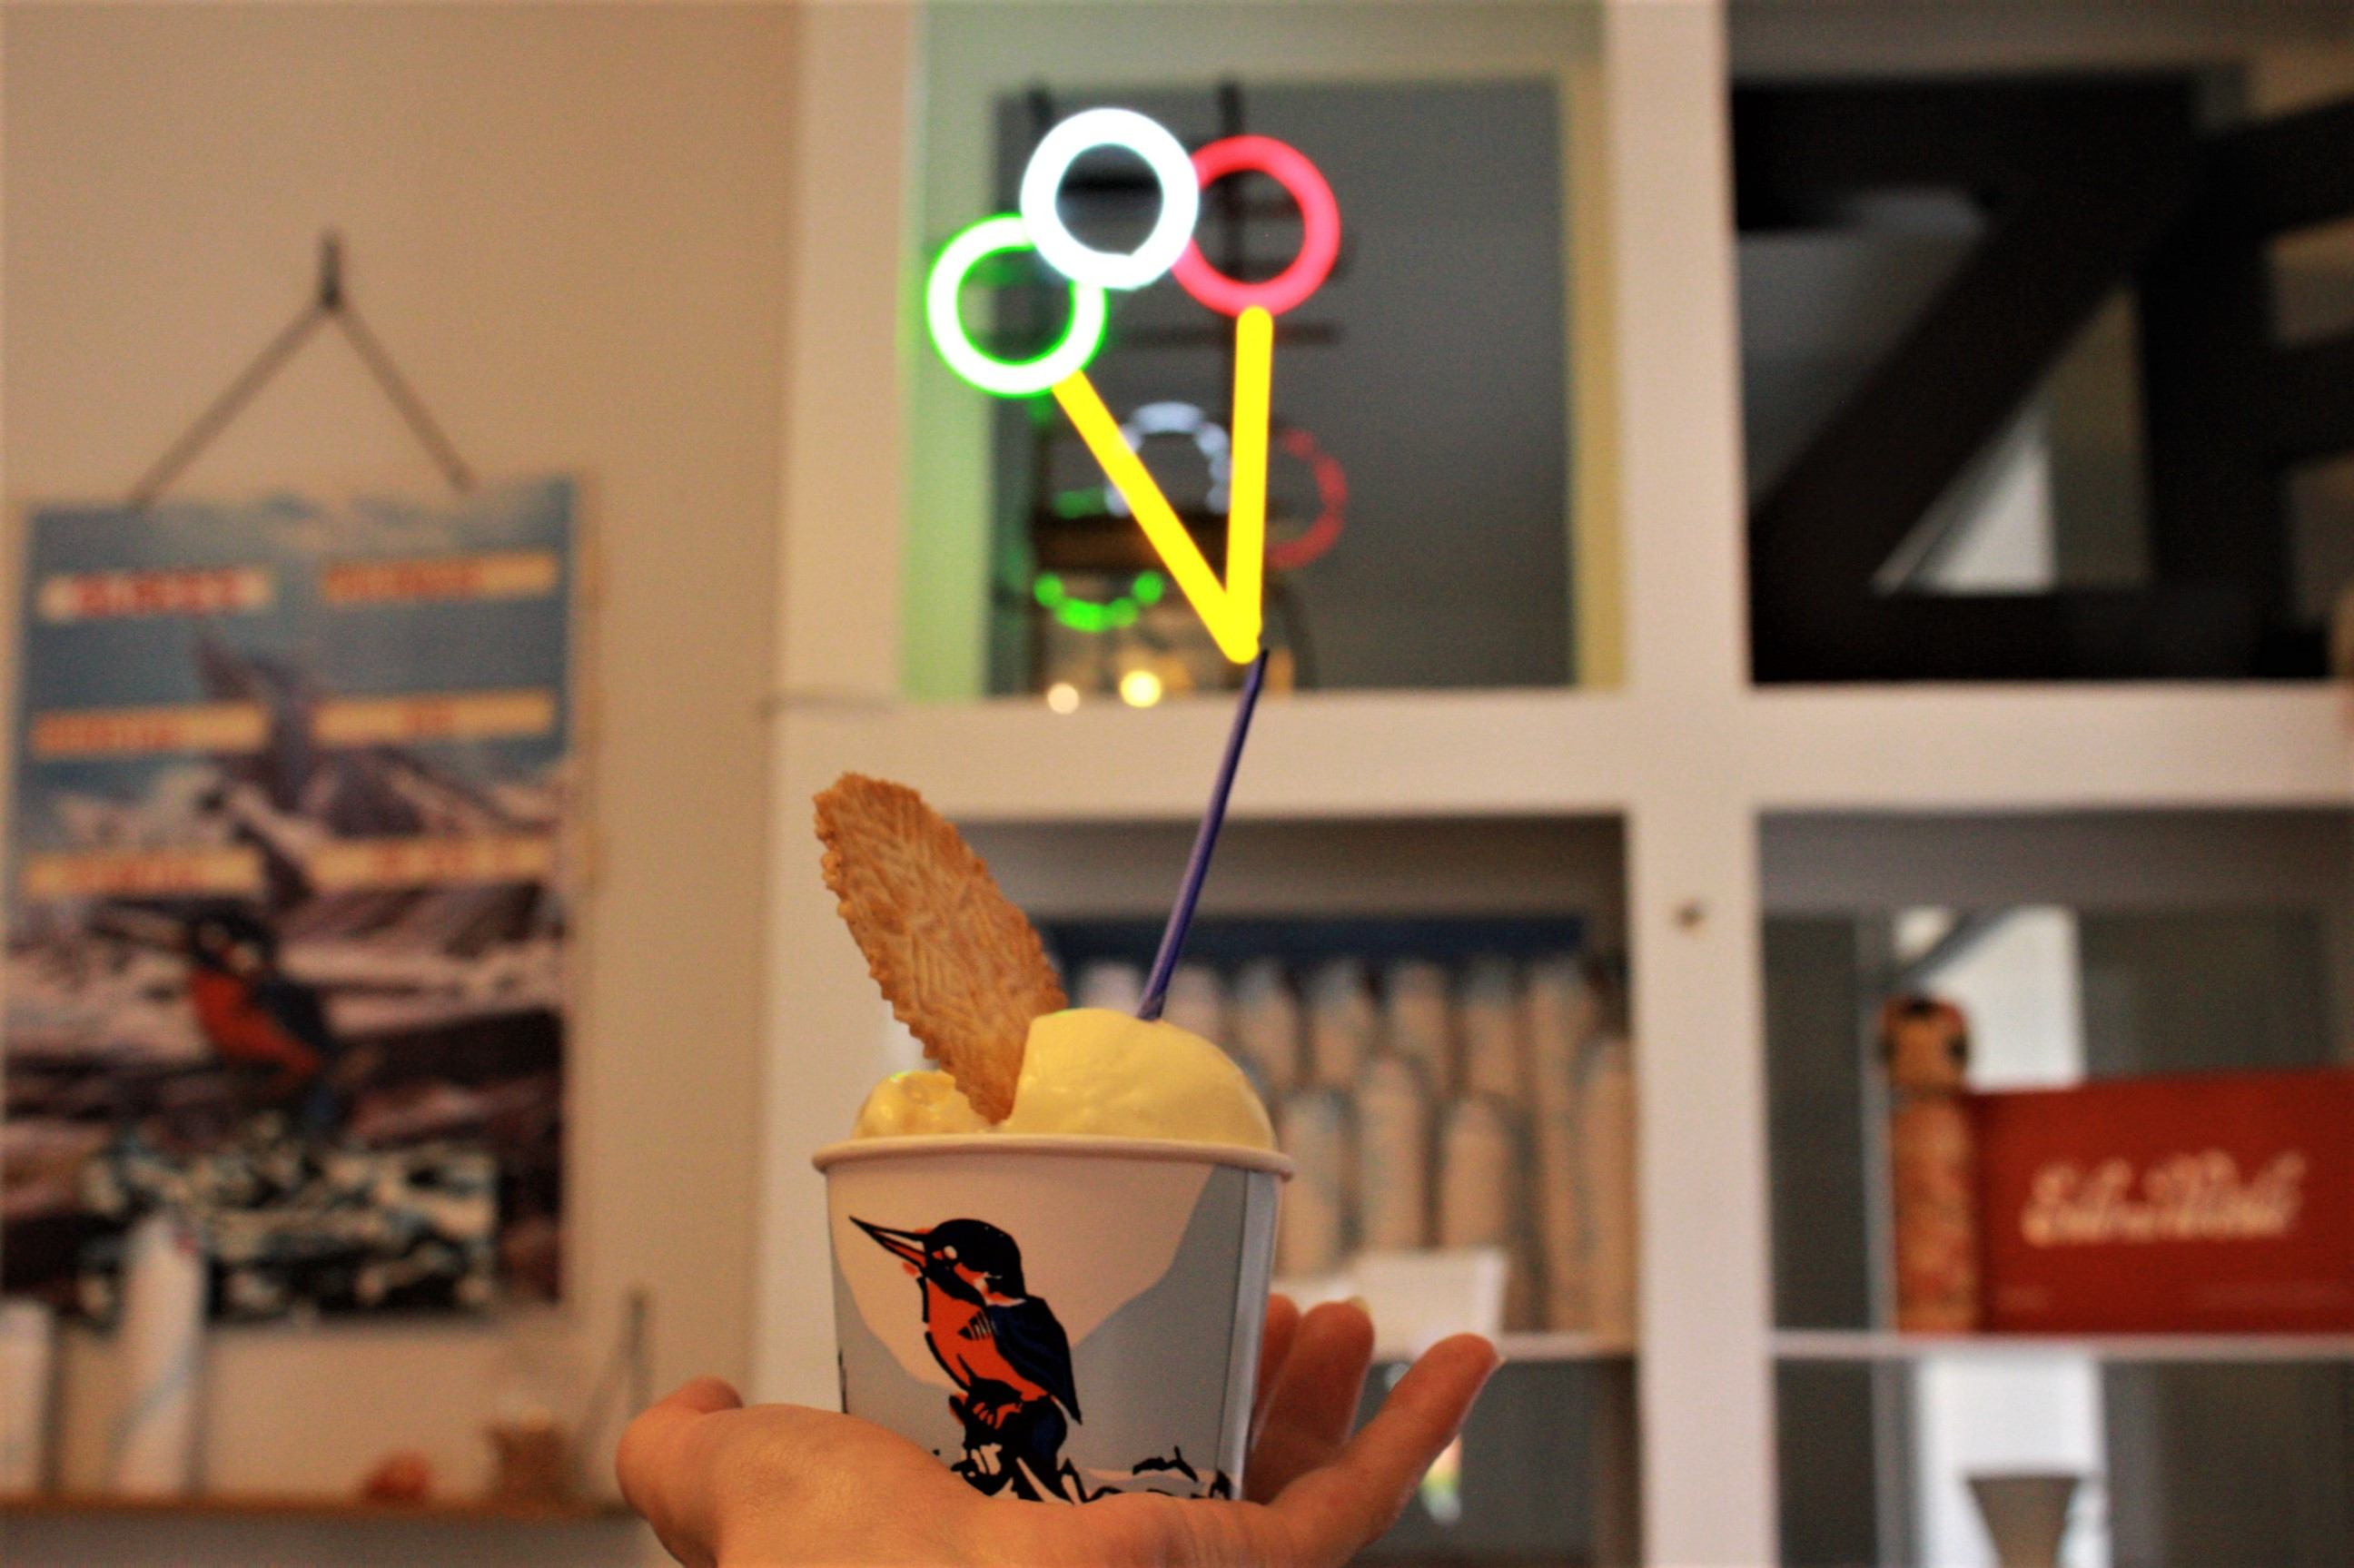 Hand holding small cup of ice cream with neon sign in back